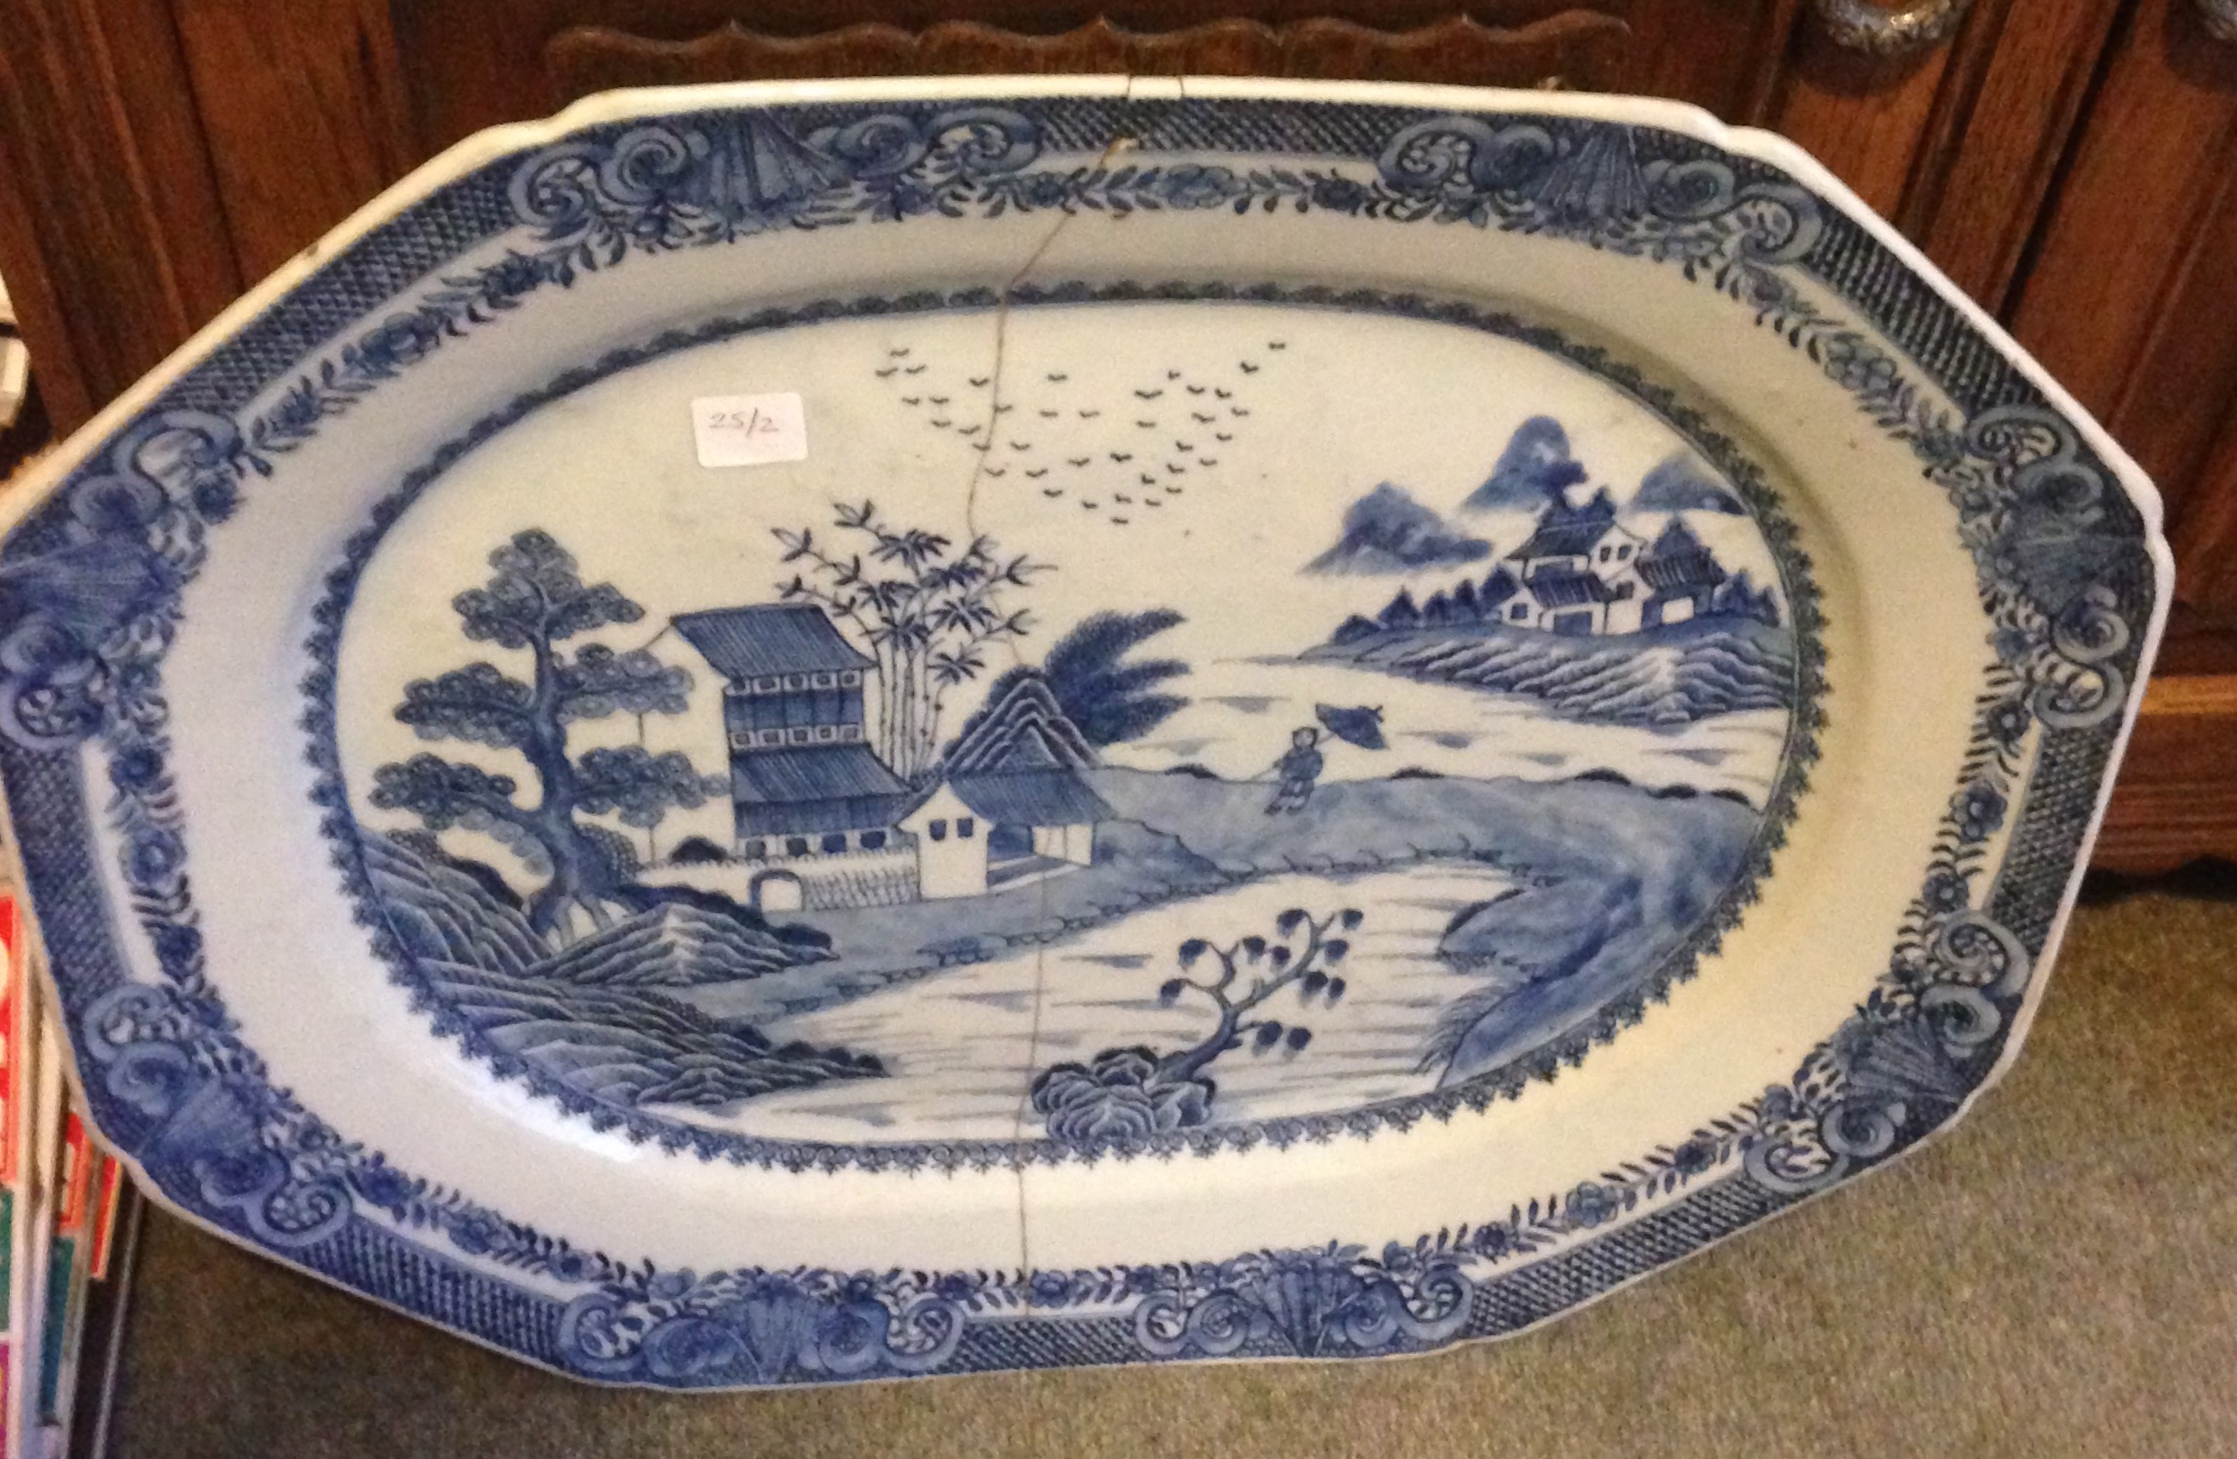 Lot 17 - An 18th c blue and white porcelain platter a/f